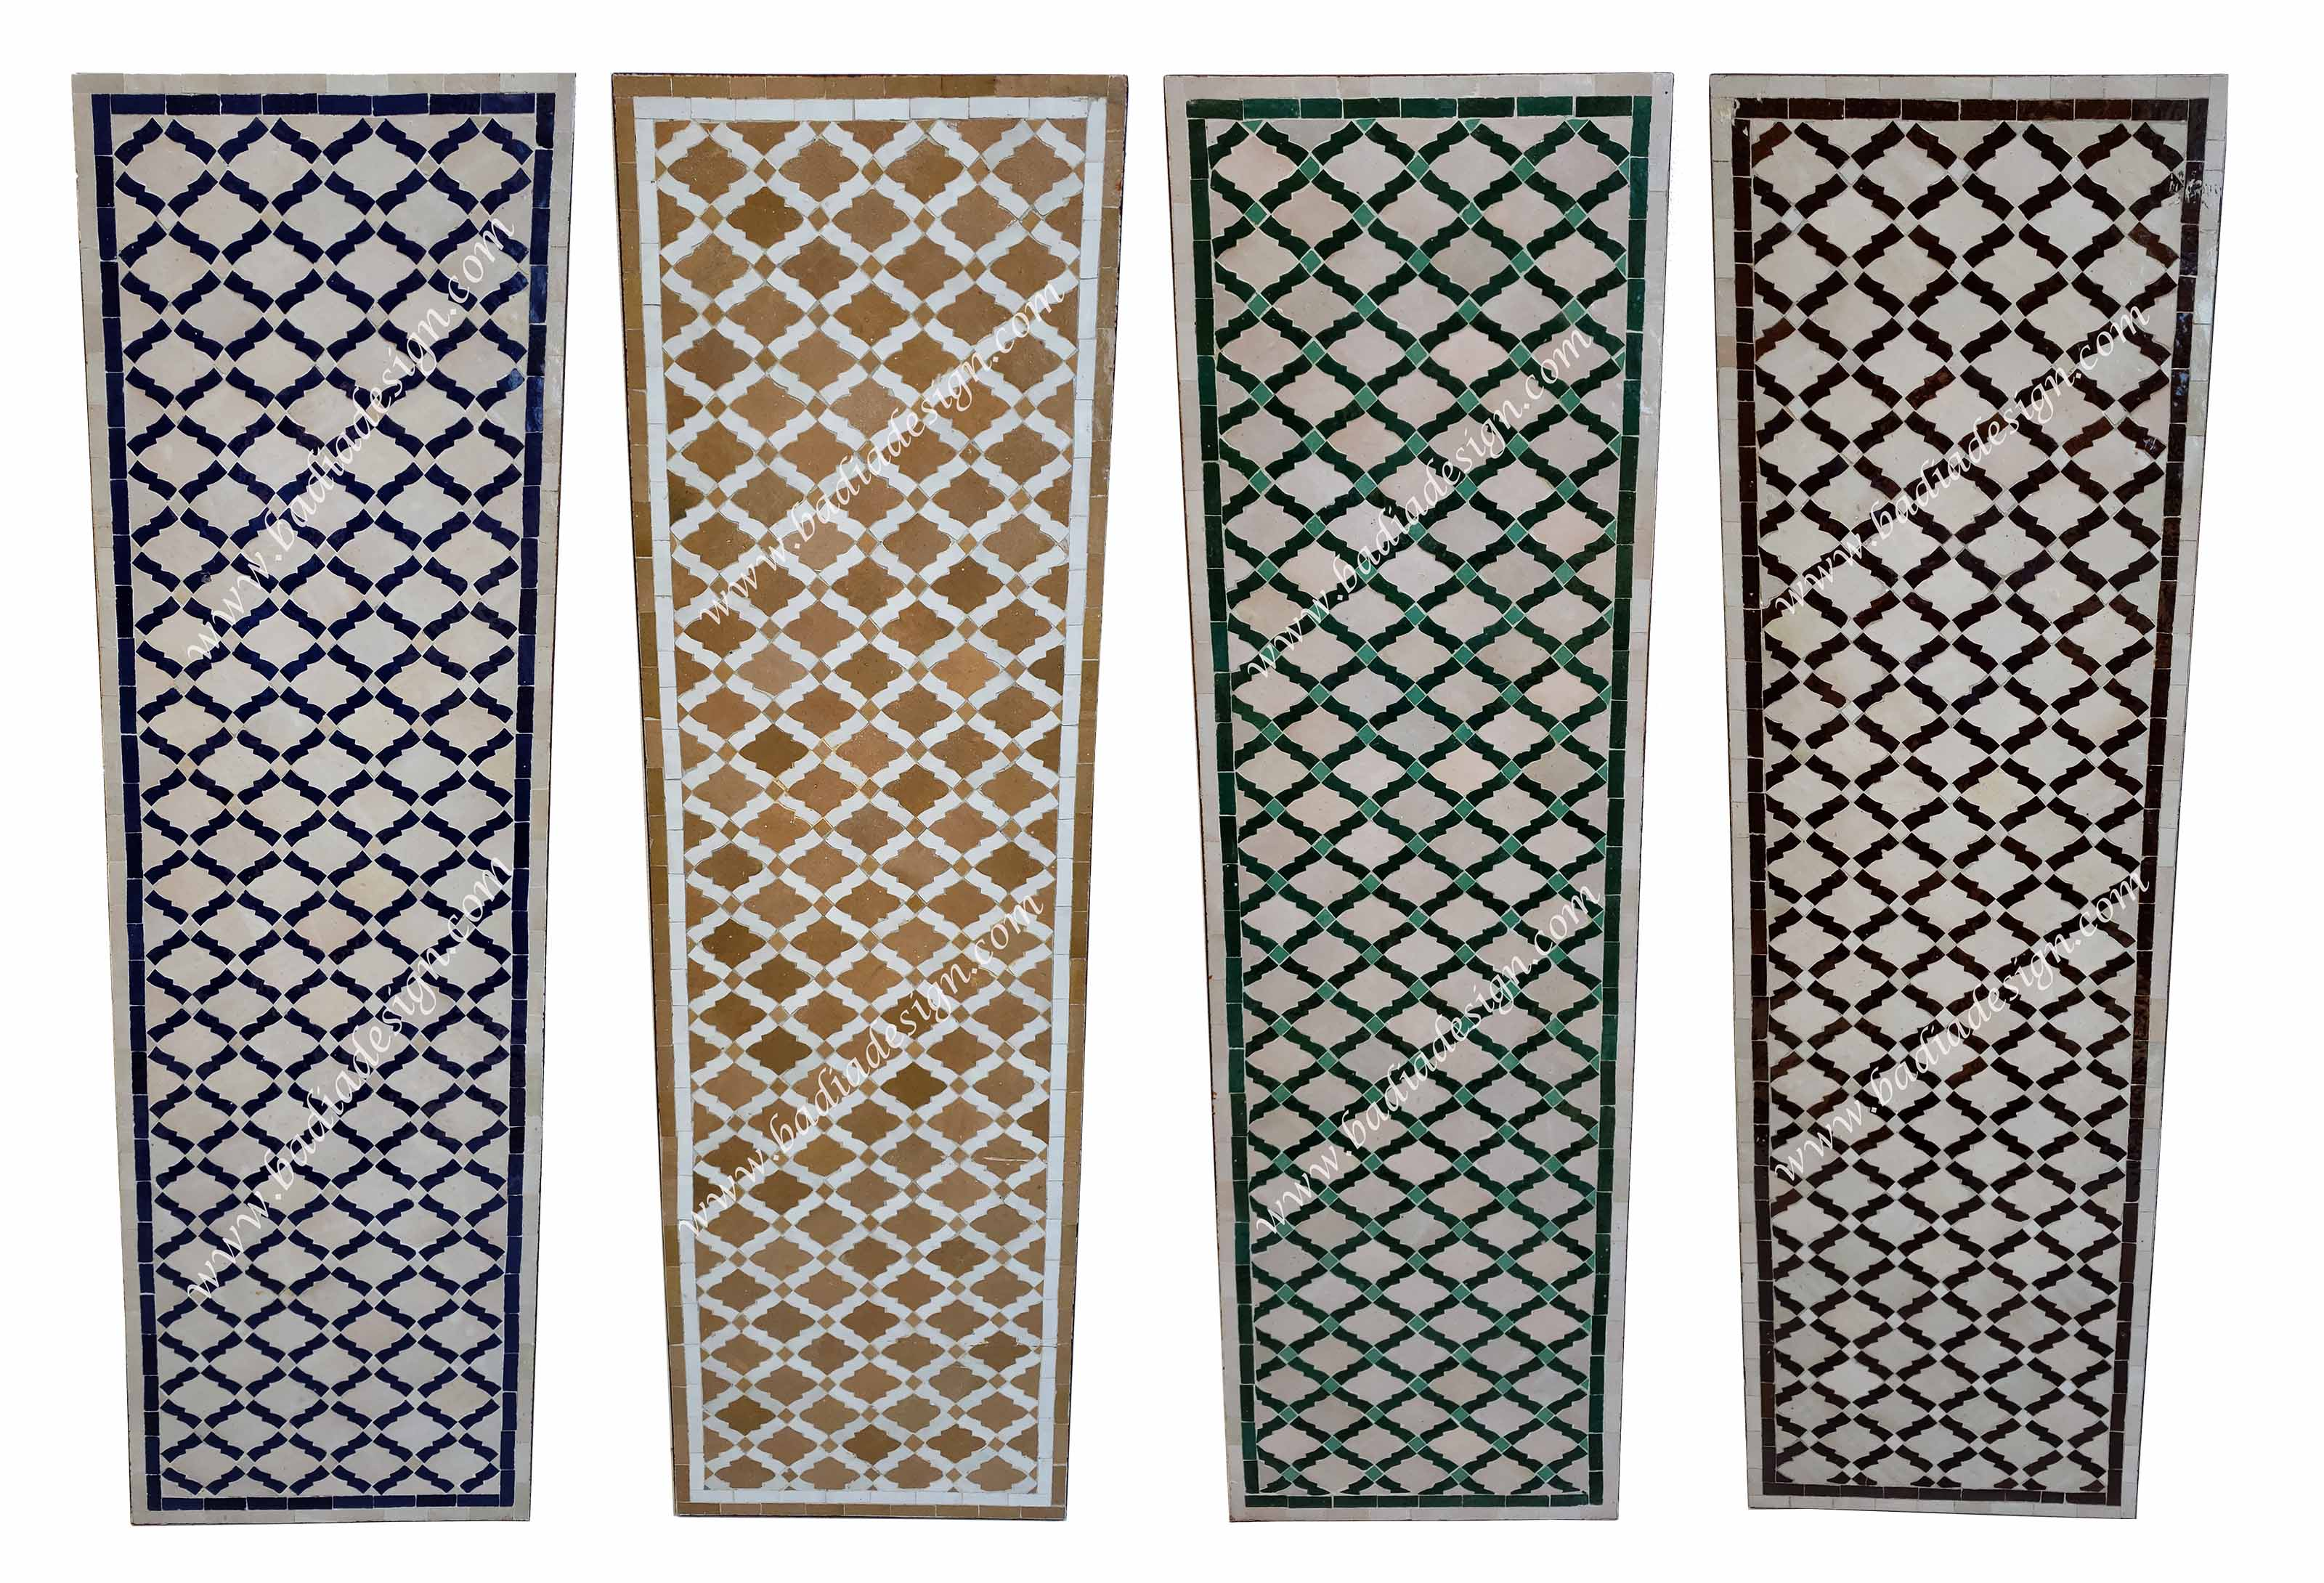 moroccan-rectangular-shaped-bistro-tile-table-top-mt780.jpg